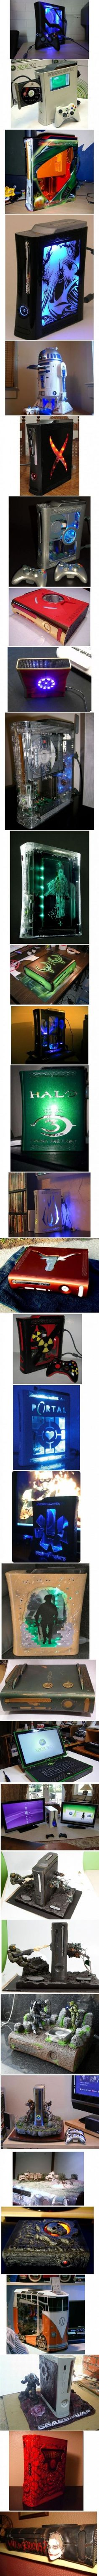 Geeks + too much time = awesome xbox mods! Xbox 360, Playstation, Geeks, Bartop Arcade, Custom Consoles, Cool Inventions, Computer Case, Best Funny Pictures, Videogames